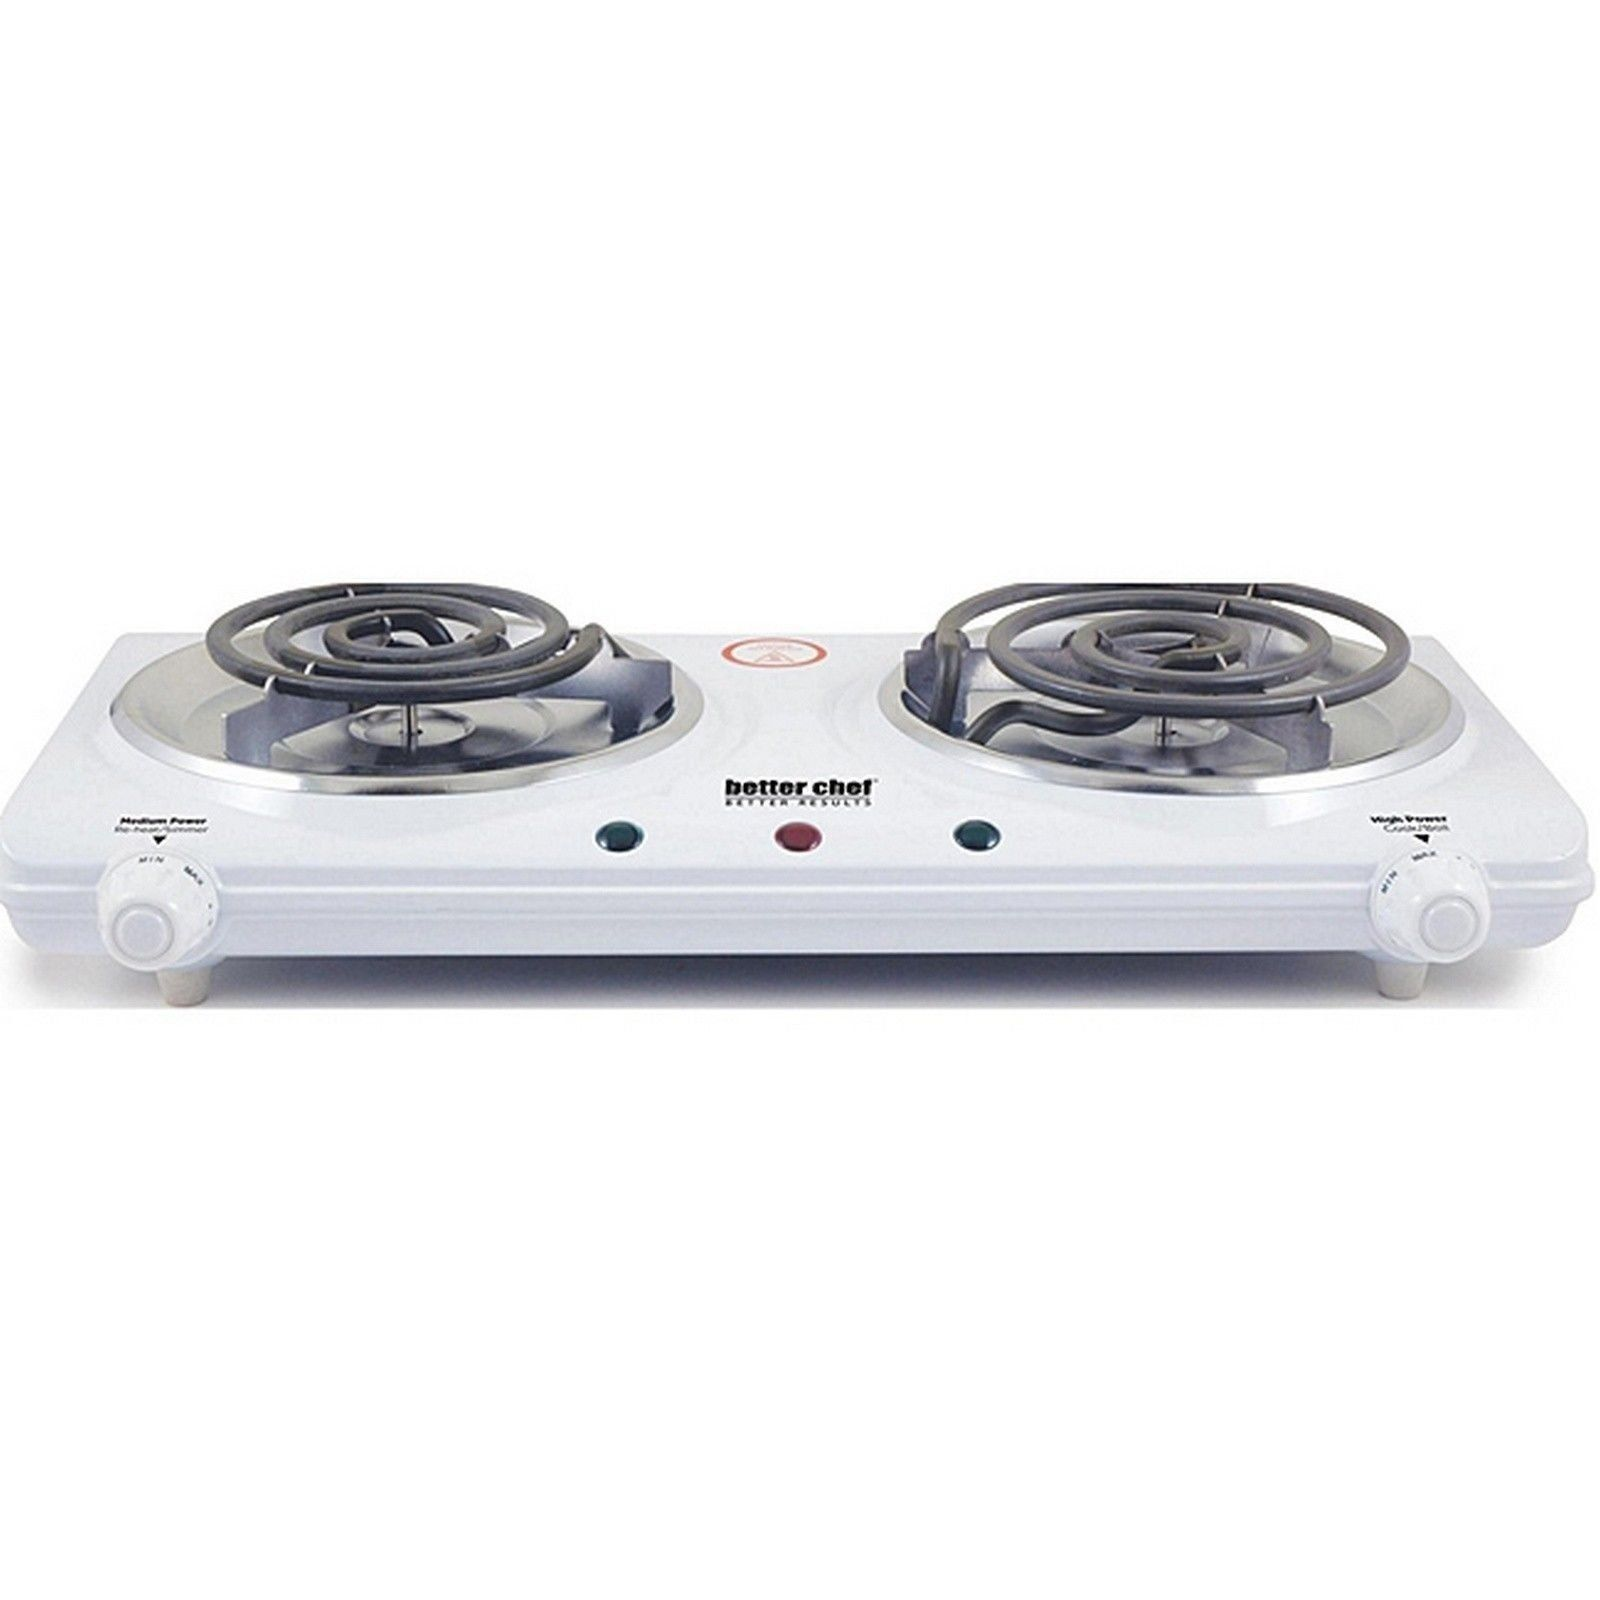 Portable Electric Dual Burner Electric Double Countertop Hot Plate White Imperial Home Countertop Hot Plate